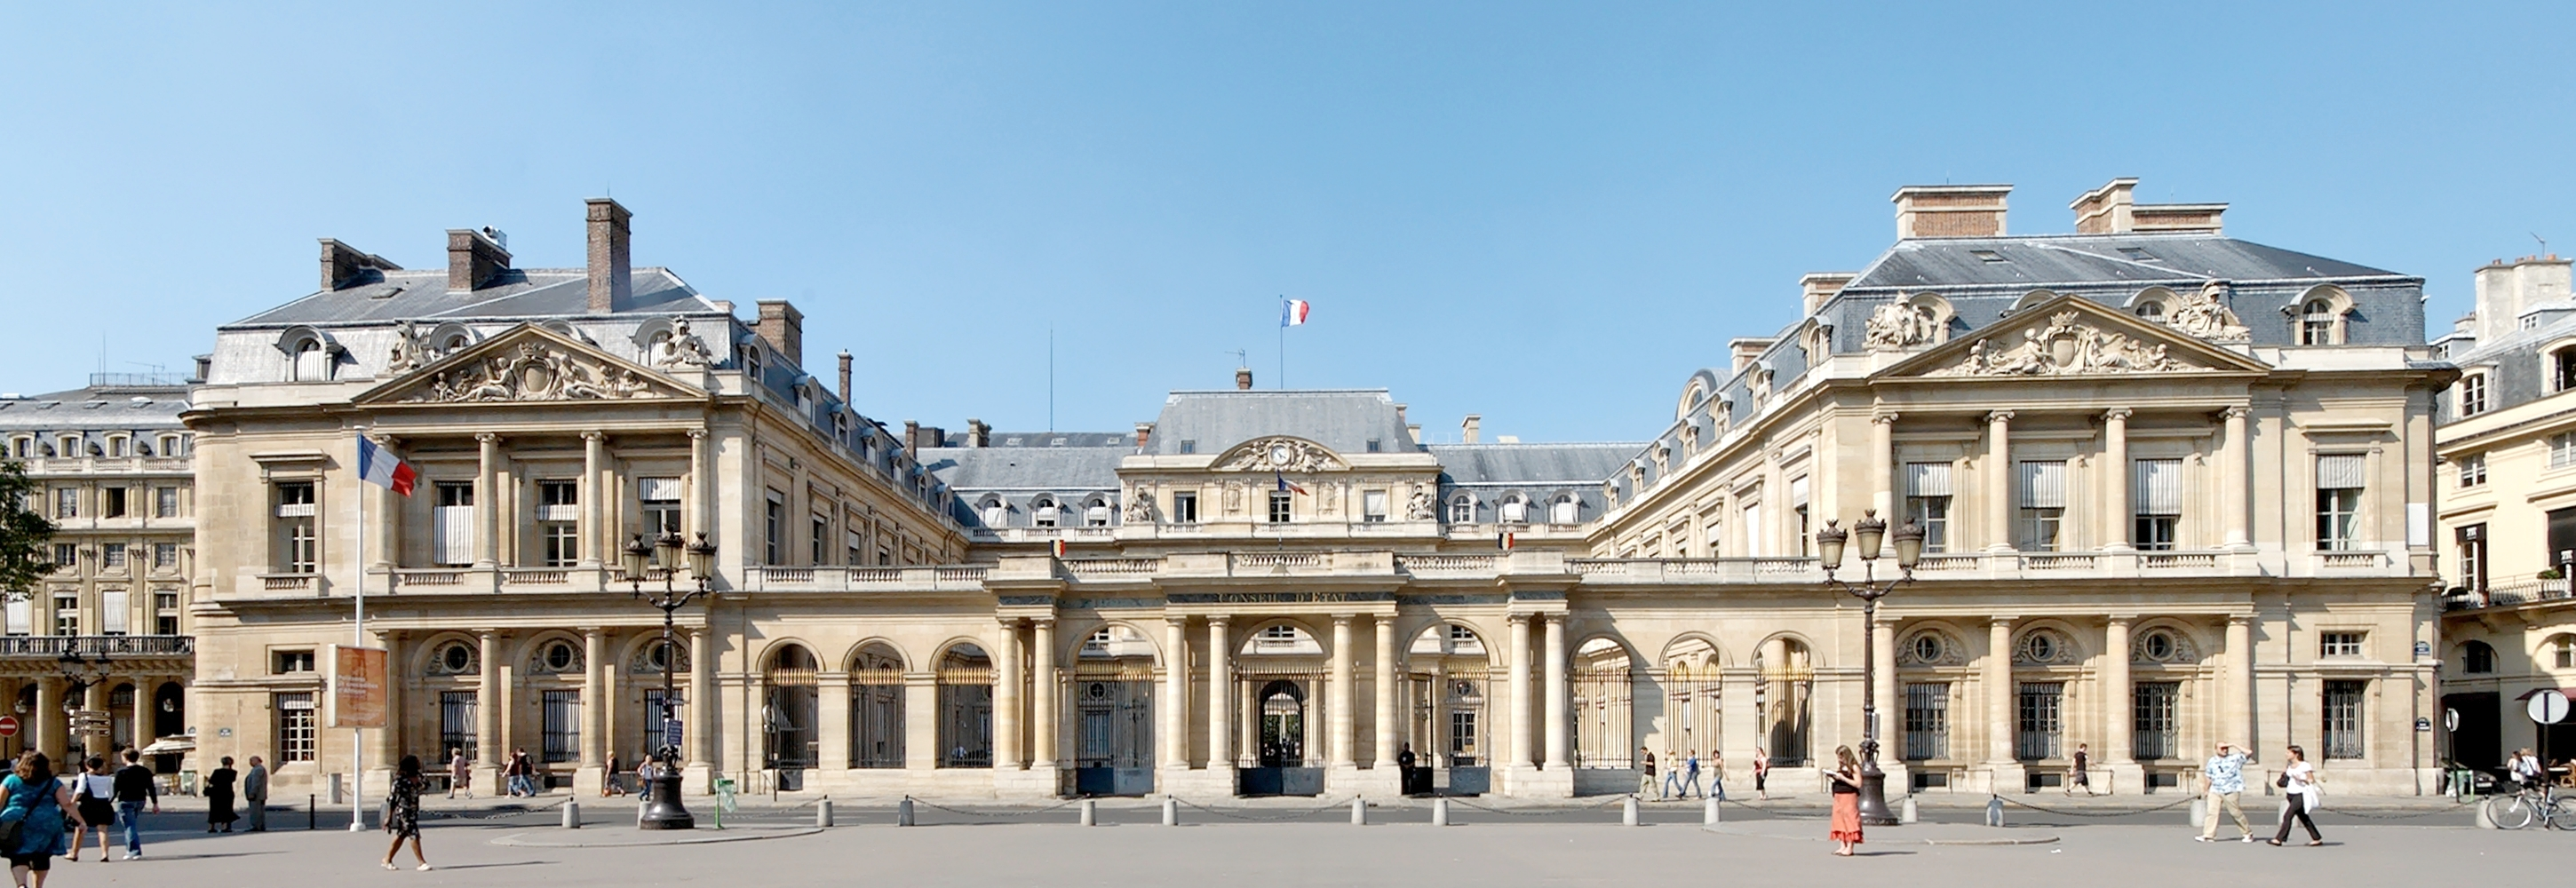 https://upload.wikimedia.org/wikipedia/commons/8/85/Conseil_d%27Etat_Paris_WA.jpg